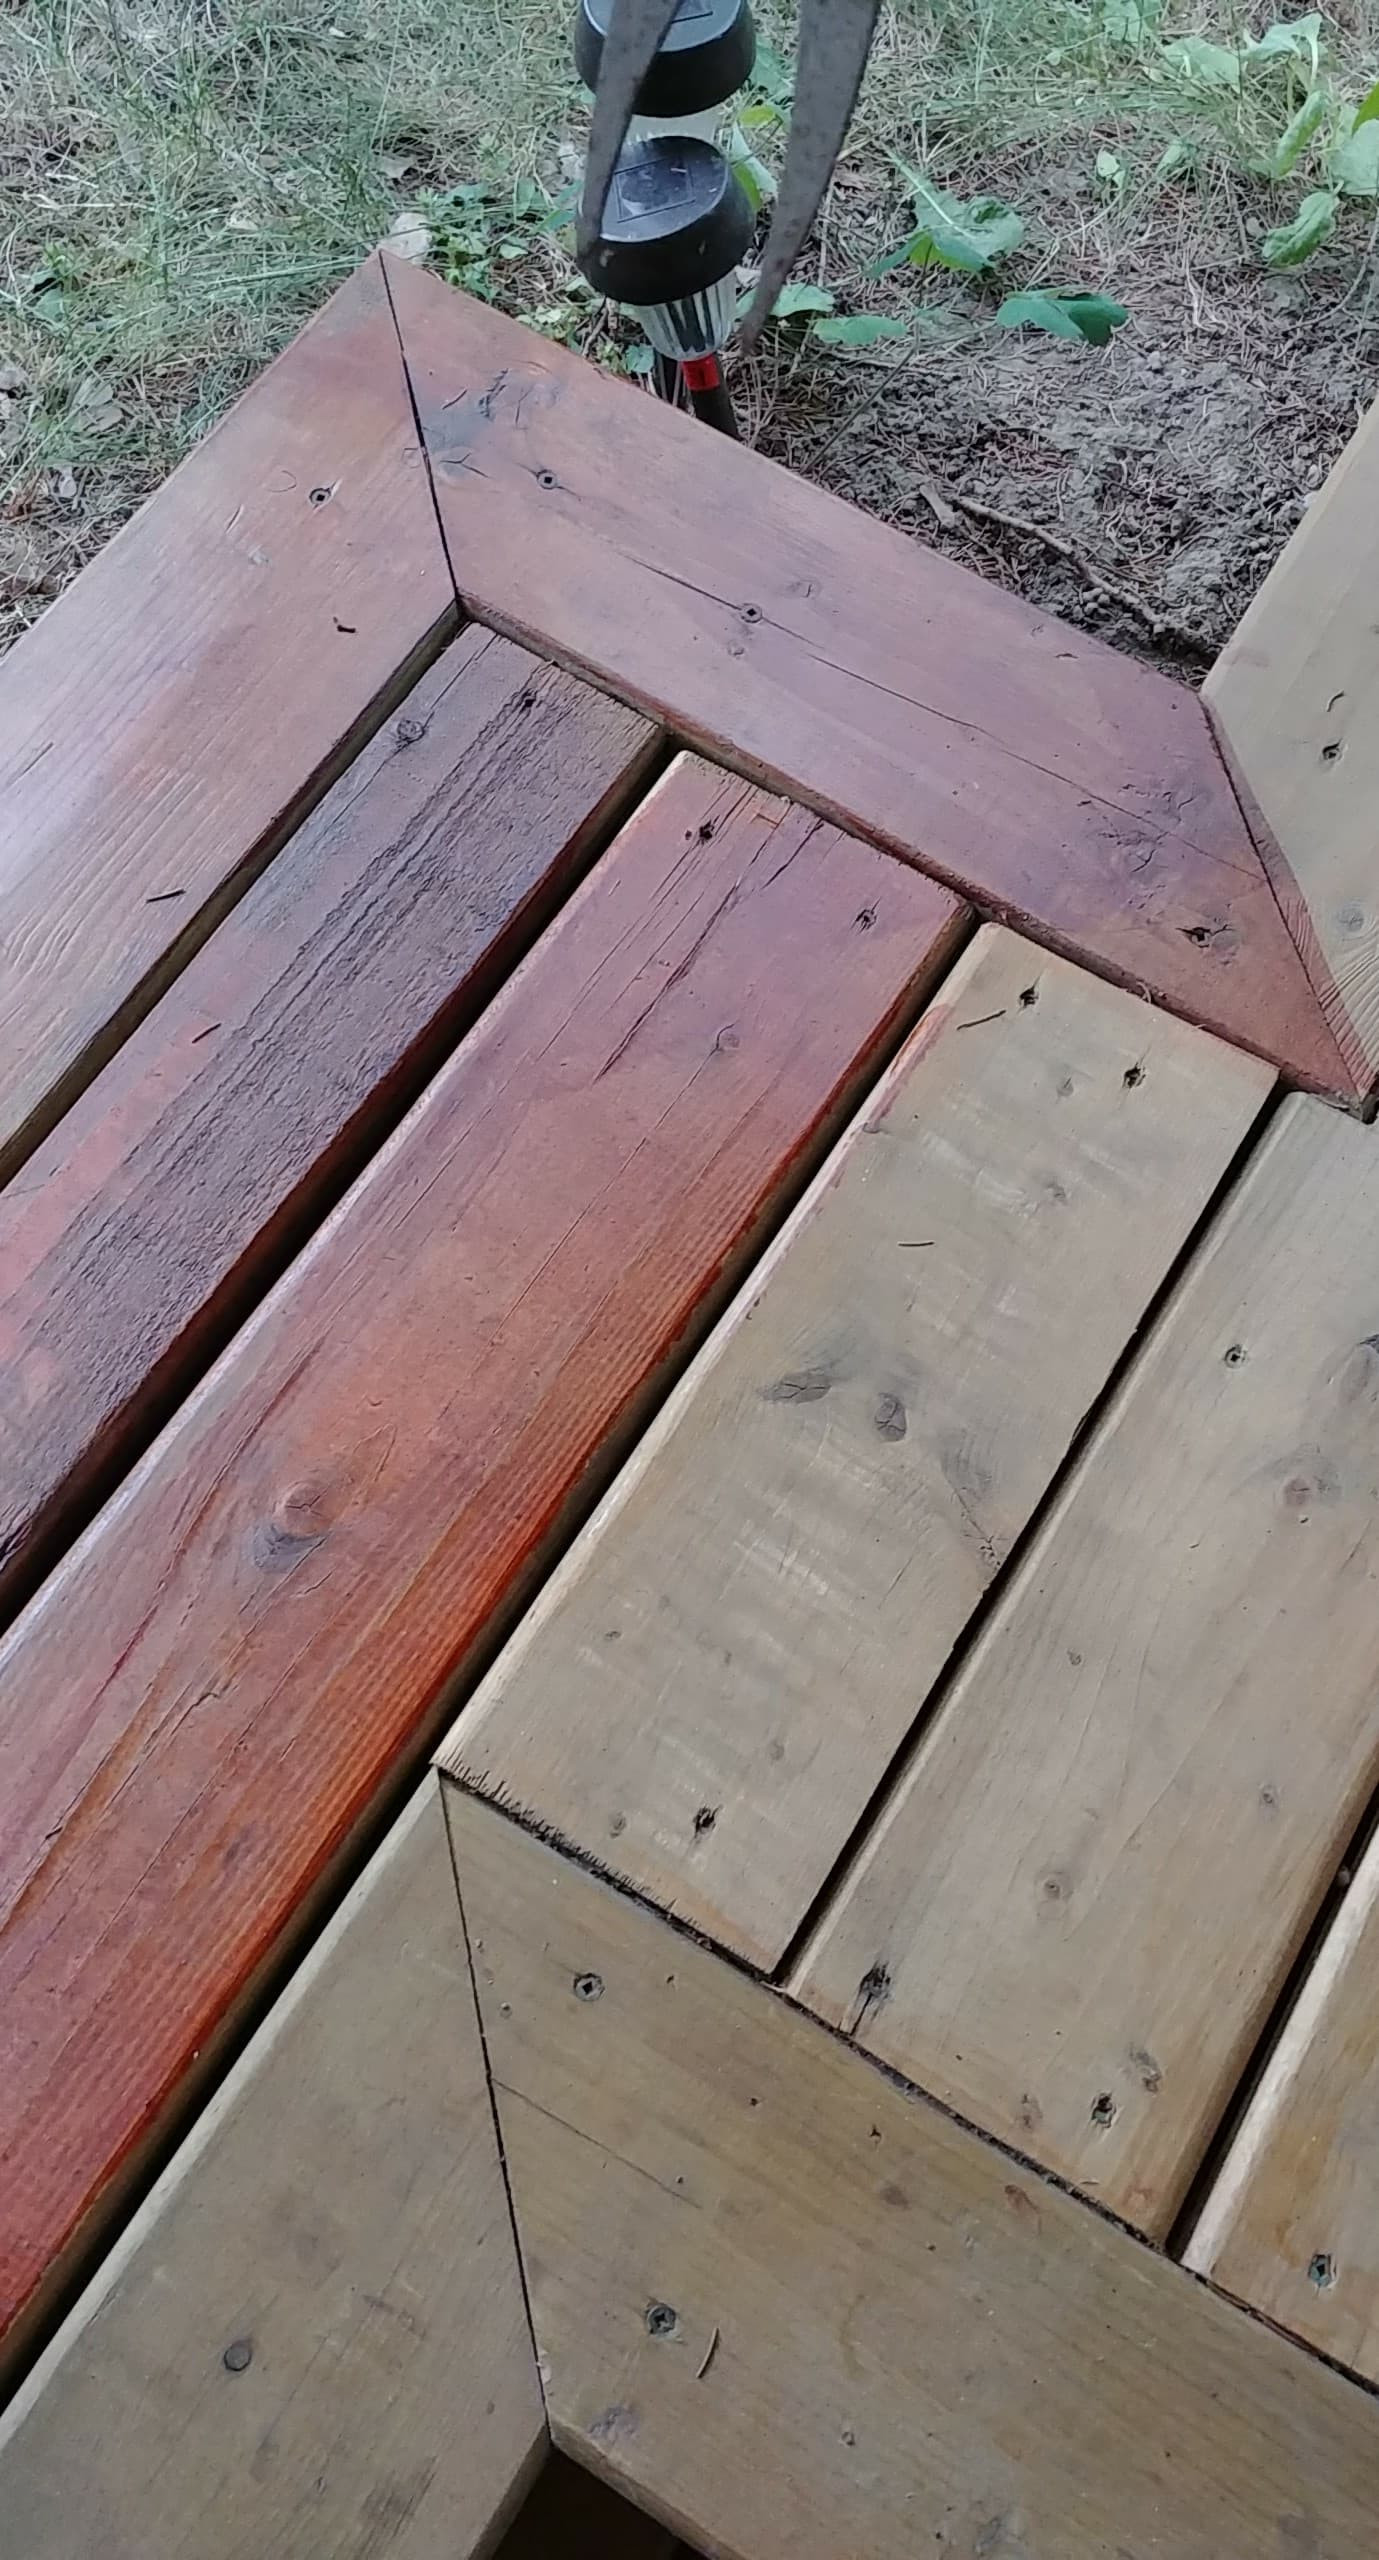 Hardwood Floor Stain Not Drying Of Deck Stripping Removing An Old Deck Stain Best Deck Stain Regarding Received 10160484697405231